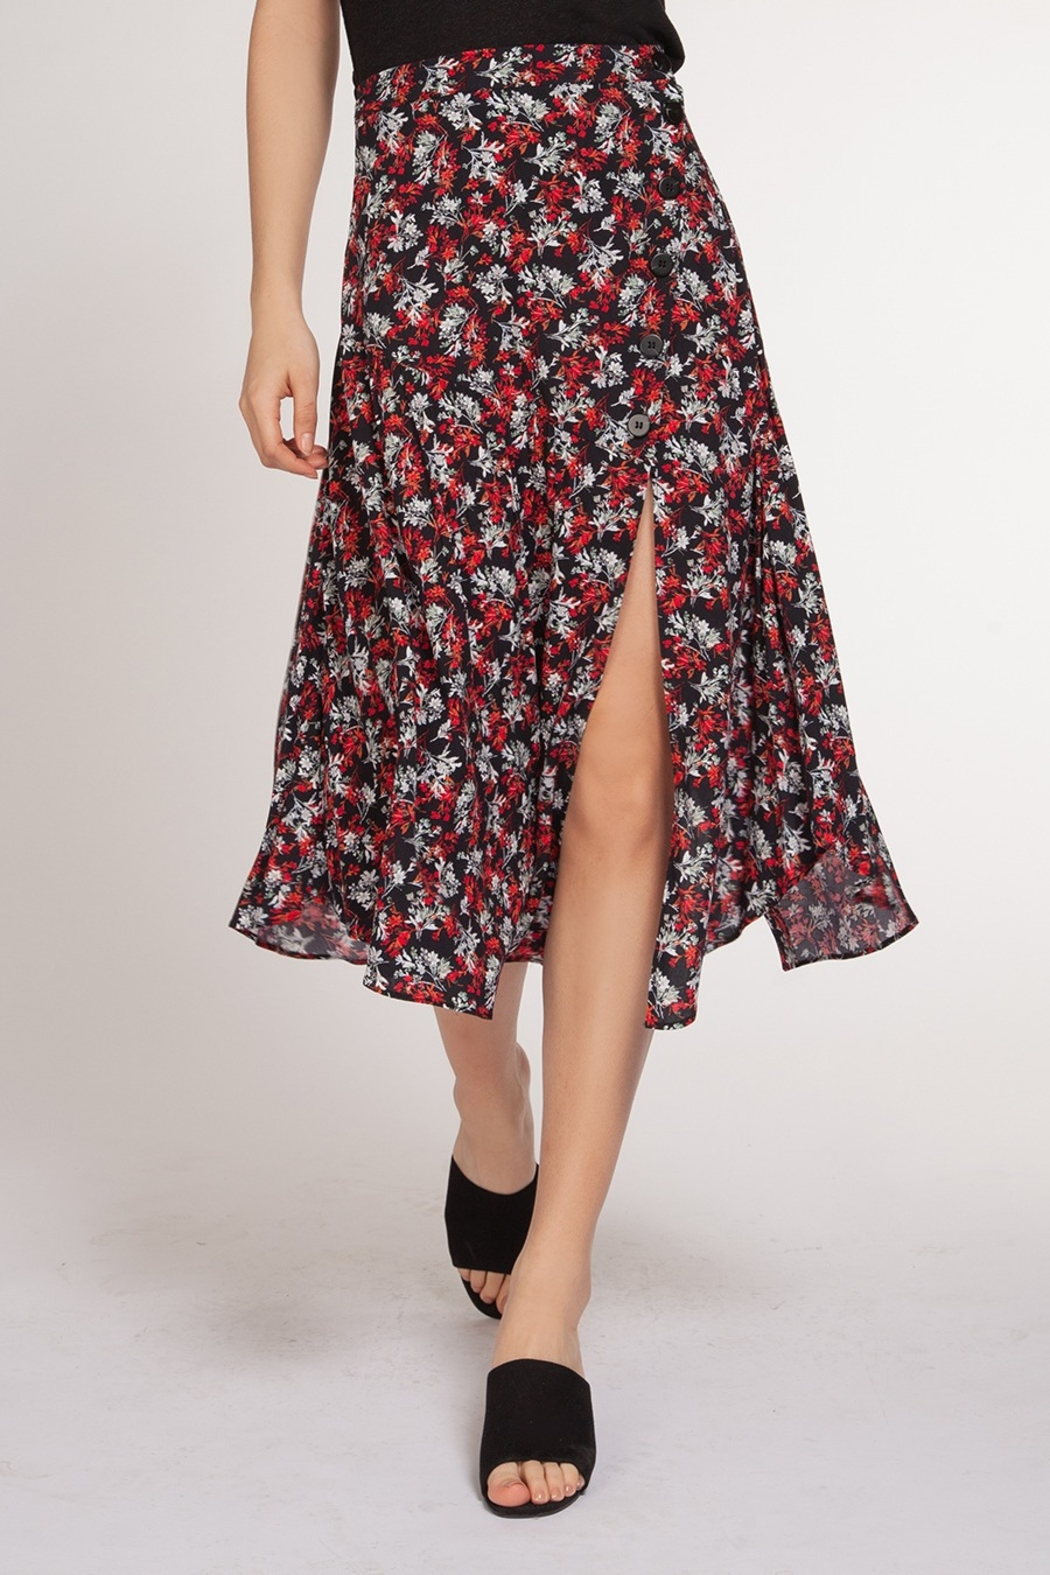 Dex Clothing Bouquet Maxi Skirt - Front Cropped Image